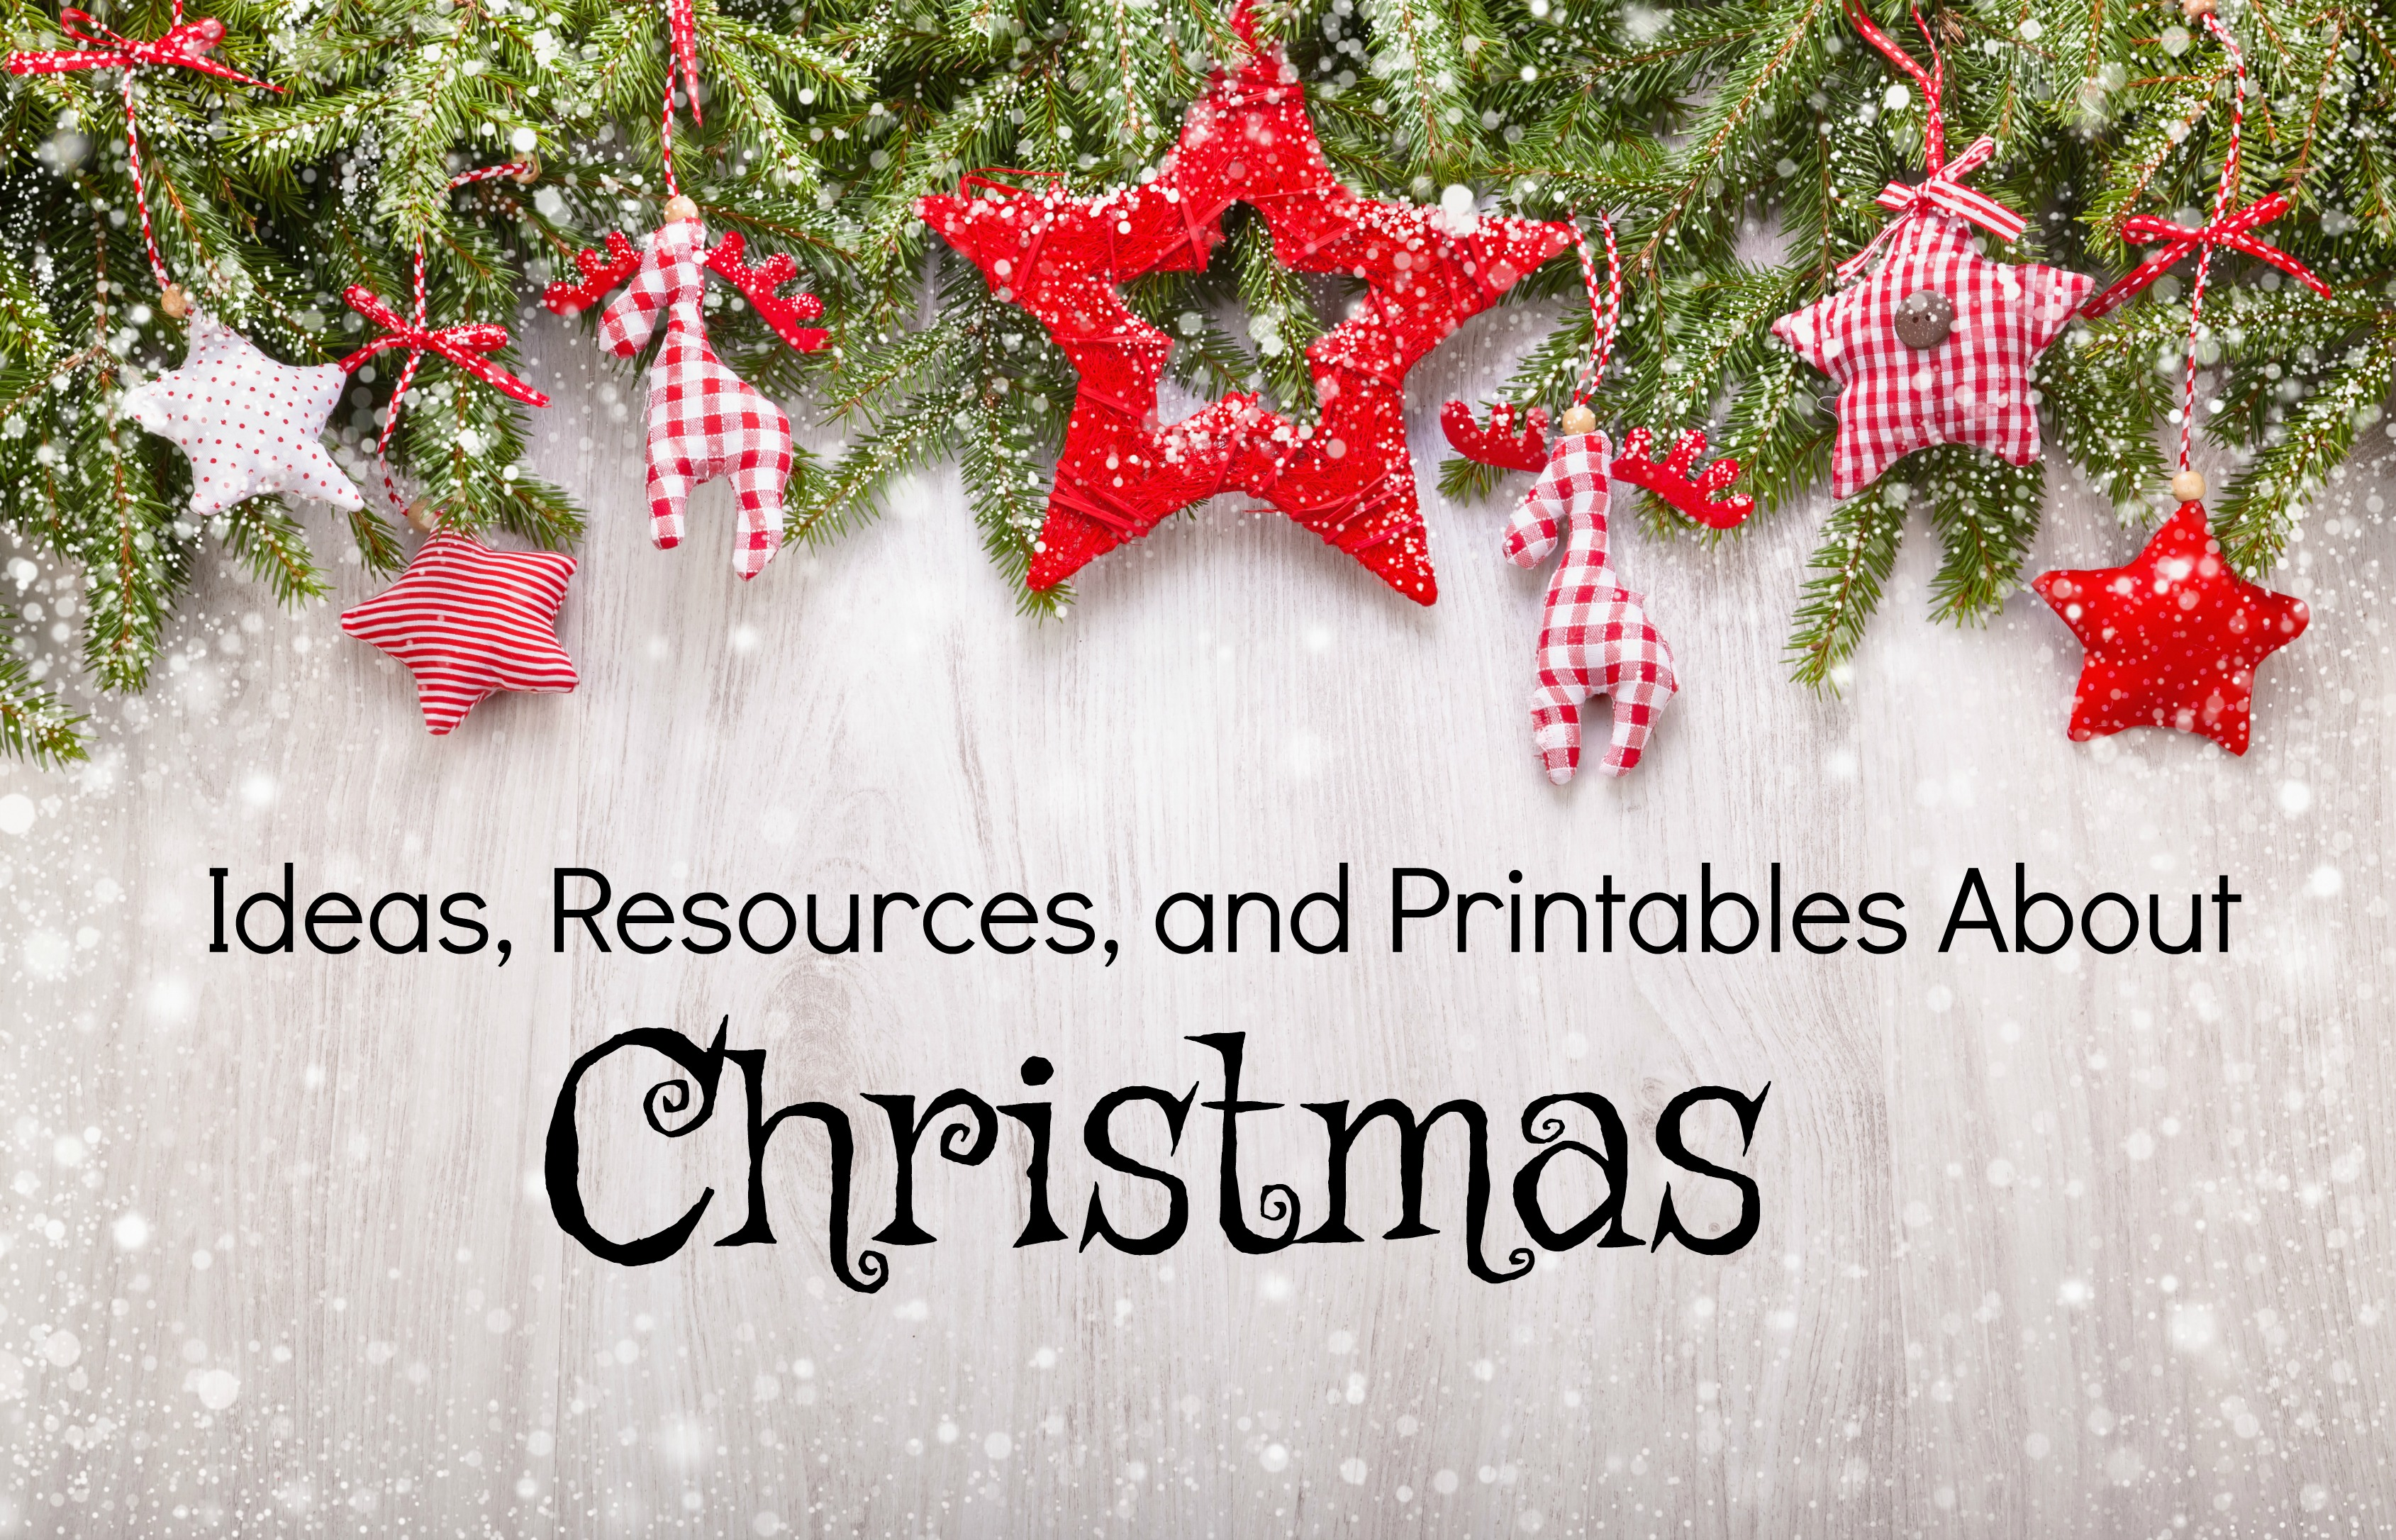 This is a great collection of lots of Christmas-related activities and ideas!